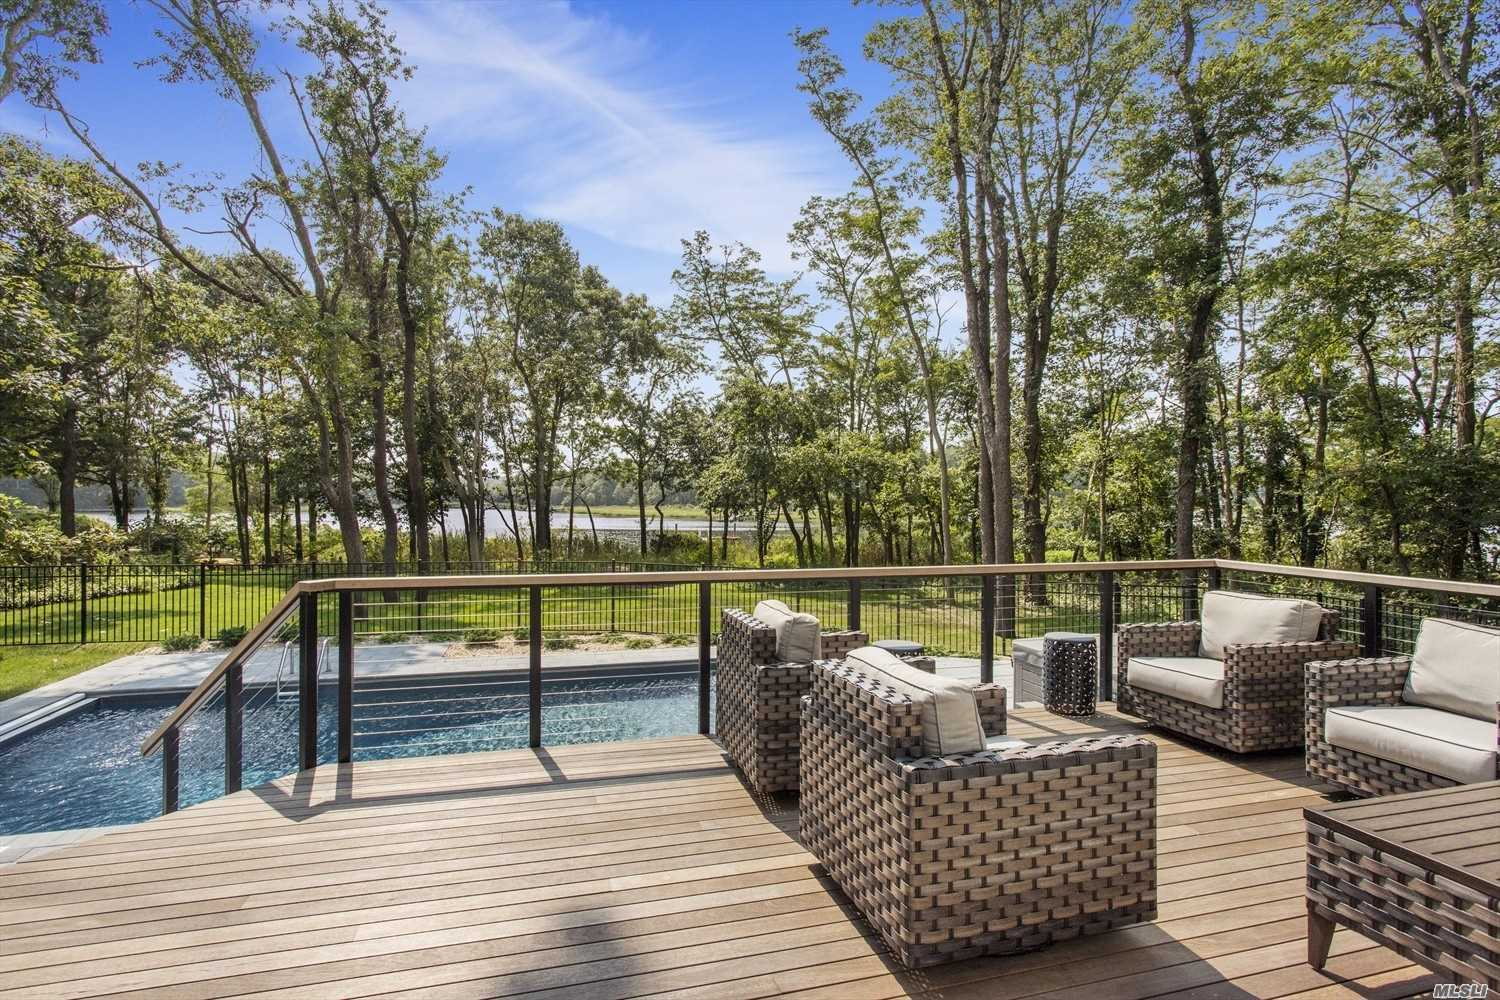 Modern Farmhouse W/Pool In Heart Of Mattituck! Nestled On Nearly Half An Acre W/Waterfront Views Sits This Newly-Constructed 5 Bed, 5 Bath Beauty, Boasting A Fully Finished Basement, Gourmet Kitchen, Spa-Like Master, Hot Tub, Sparkling 18X36 Pool, & Fenced Back Yard. Here You'll Enjoy A Gorgeous Mahogany Deck W/Remote-Control Awning, & An Expansive 75' Walkway Leading To A Floating Deep-Water Dock For Boating. Step Indoors To Find An Impressive 2-Story Floor Plan W/Ample Space To Host A Crowd.